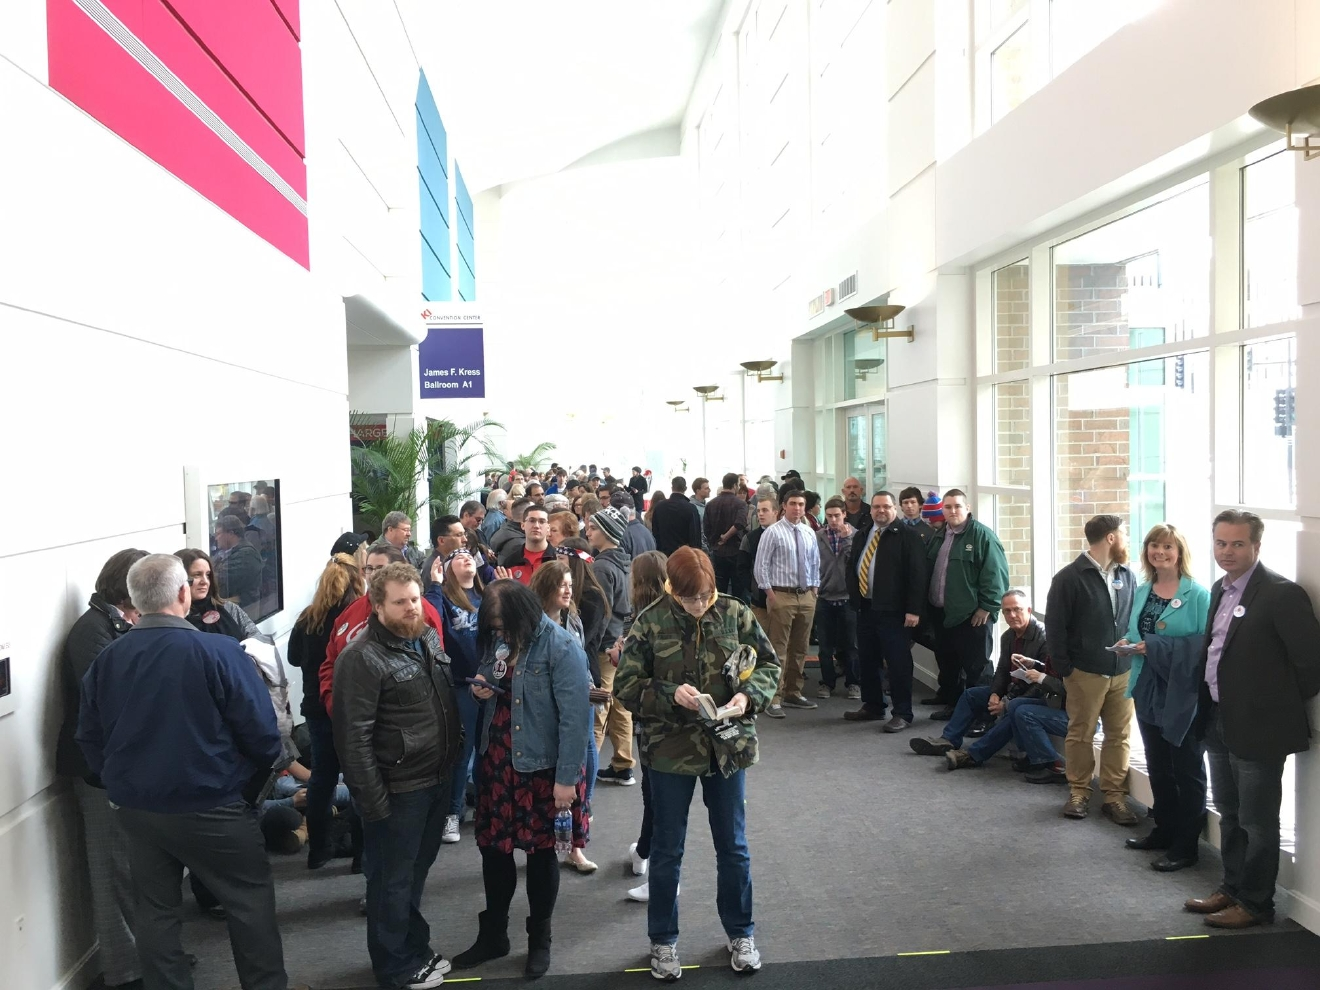 People lined up inside Green Bay's KI Convention Center ahead of an event for GOP presidential candidate Ted Cruz, April 3, 2016. (WLUK/Andrew LaCombe)